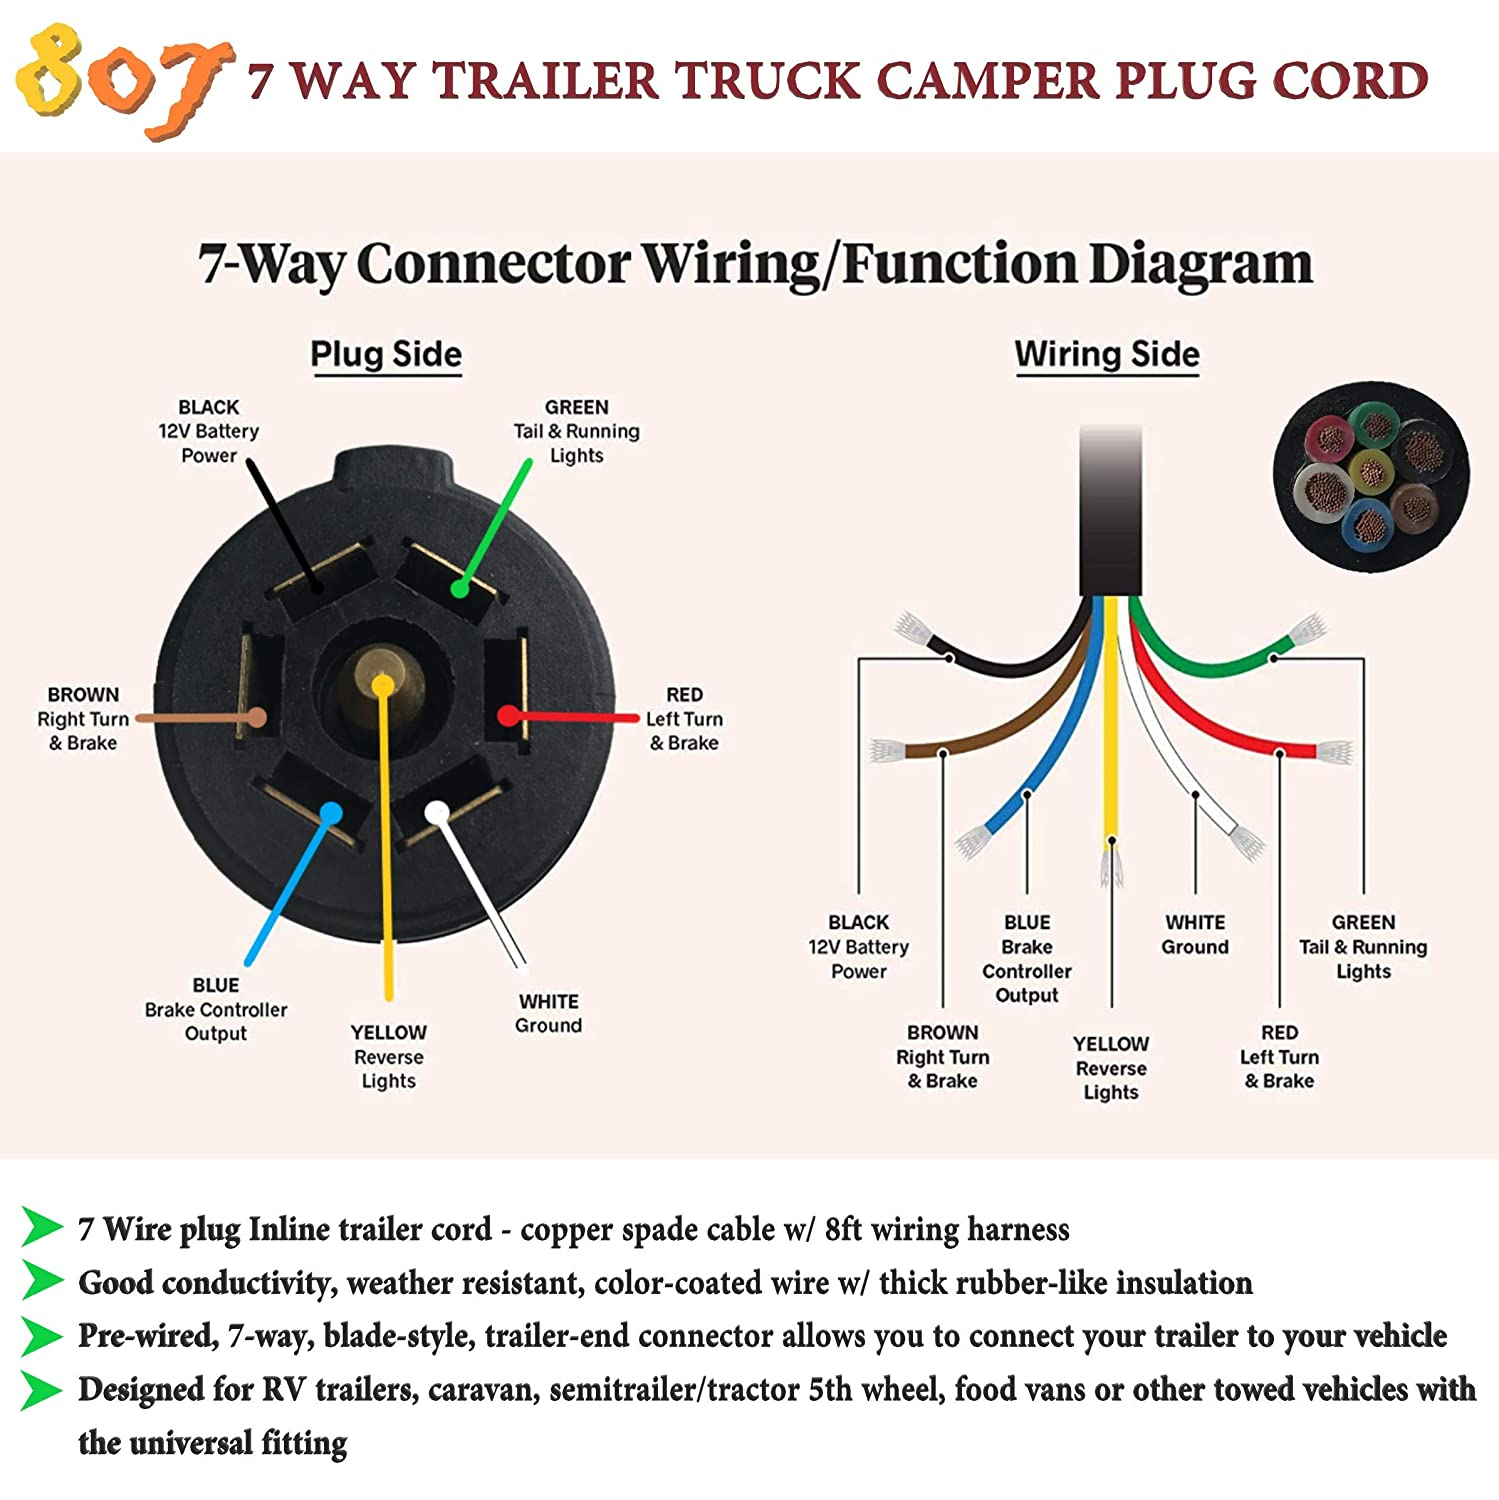 Semi Trailer Wiring Diagram from images-na.ssl-images-amazon.com